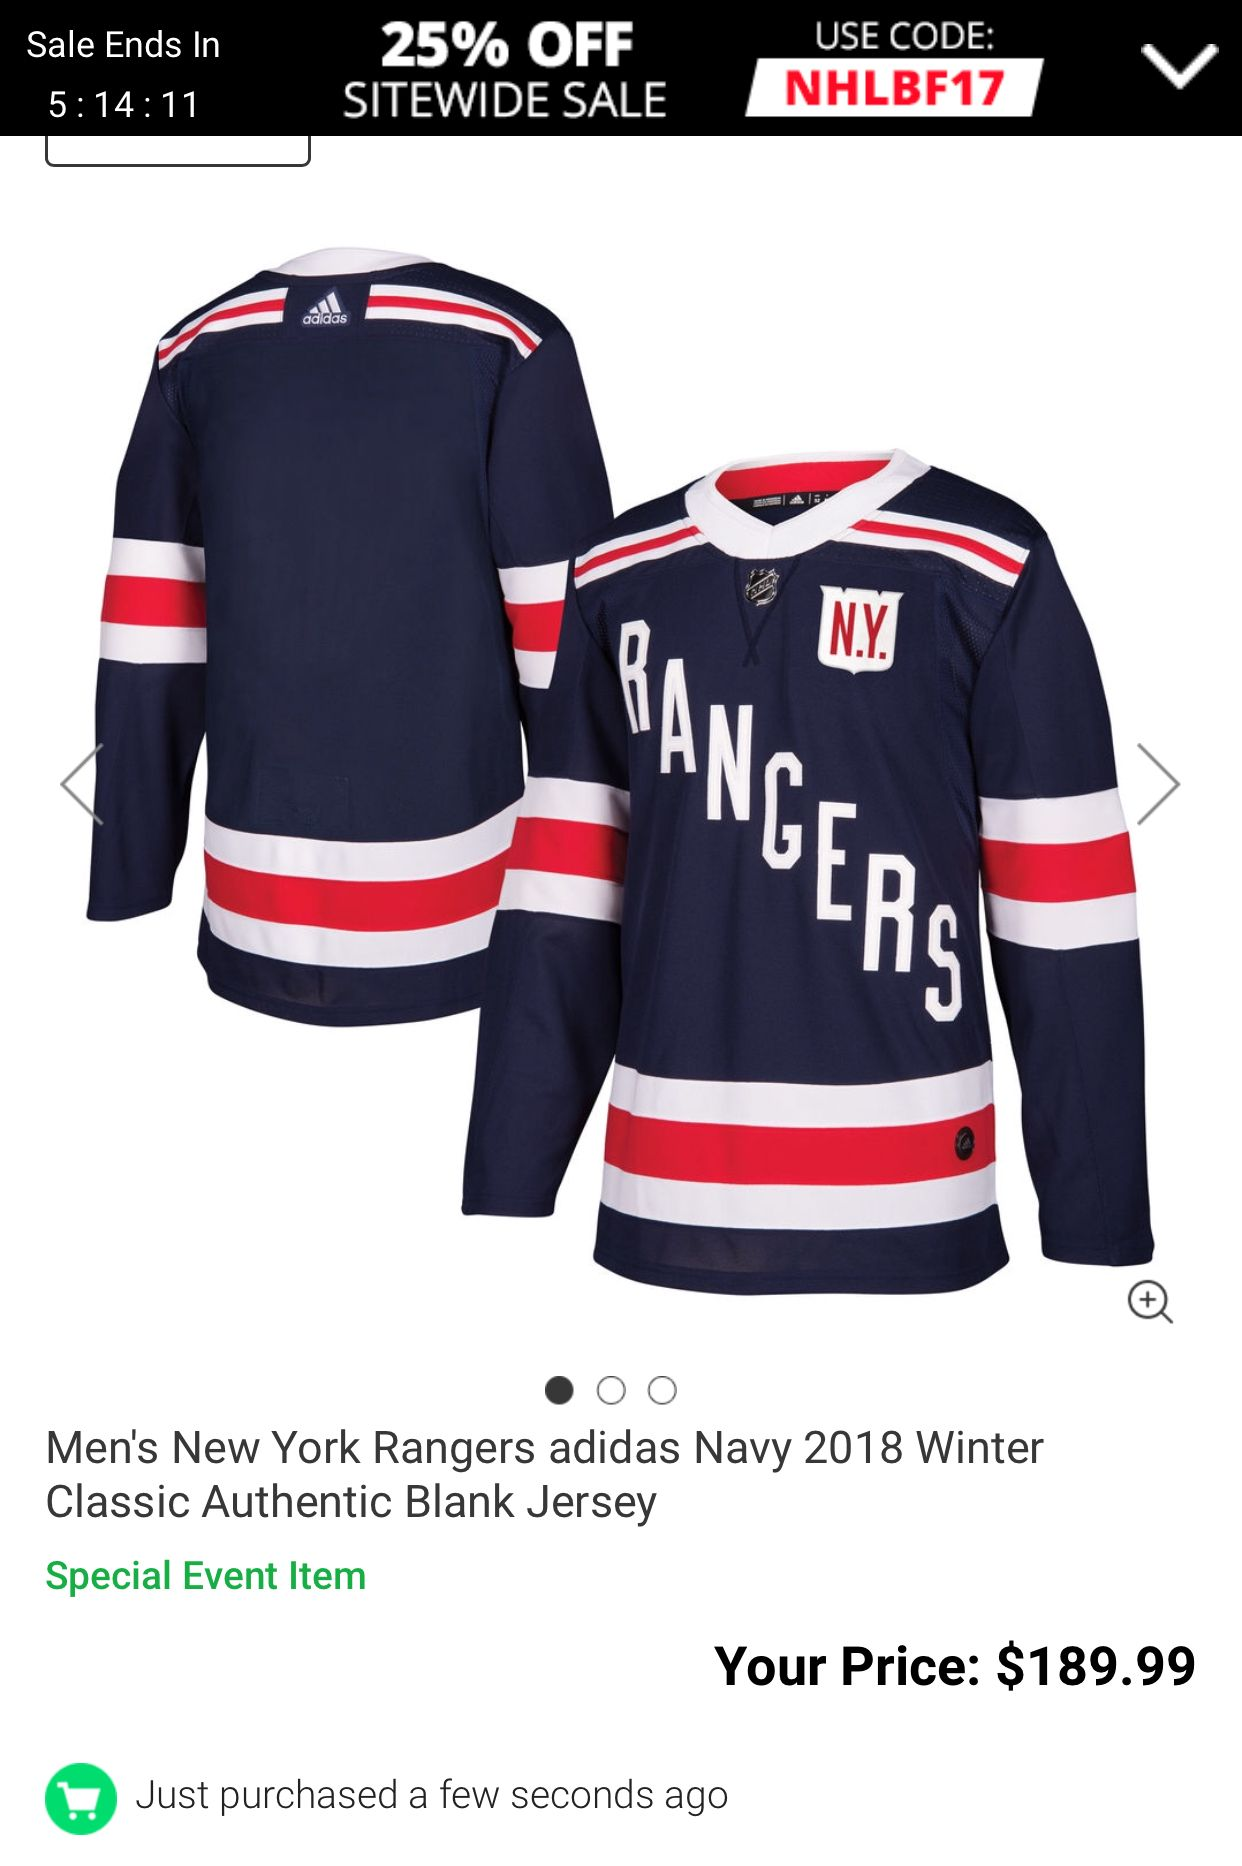 Men s New York Rangers adidas Navy 2018 Winter Classic Authentic Blank  Jersey - Shop.NHL.com e48fcc3e2dd